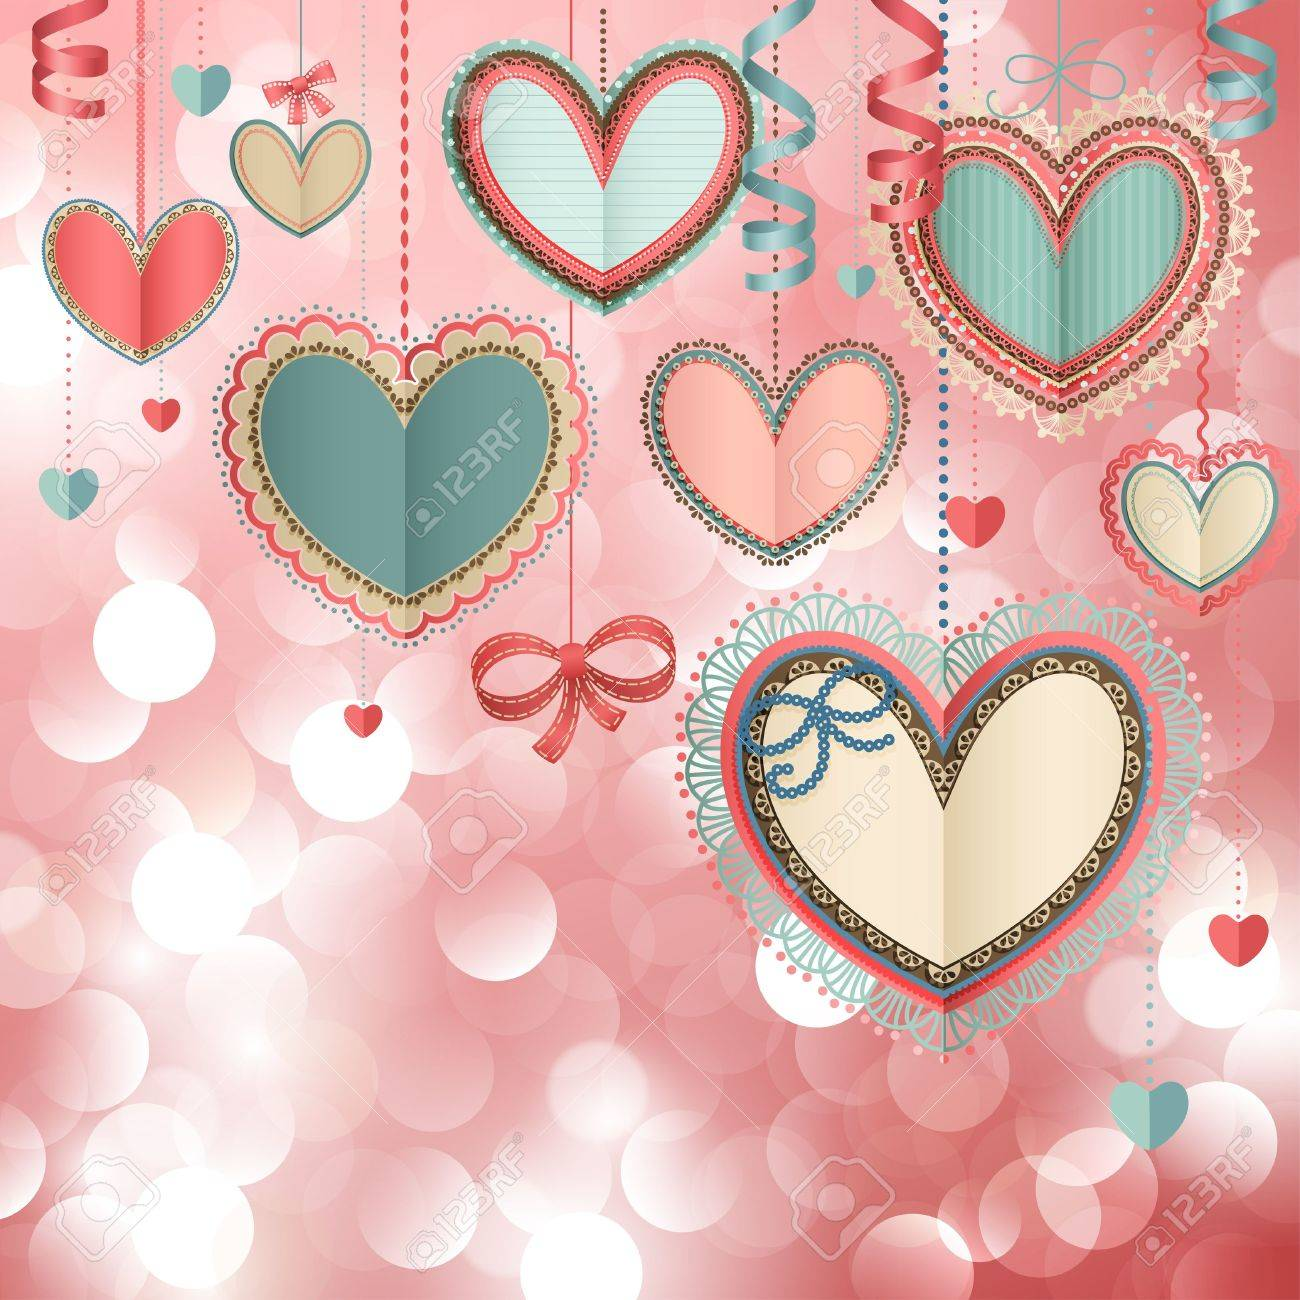 Valentine s Day vintage card with lacy paper hearts and place for text Stock Vector - 14748570